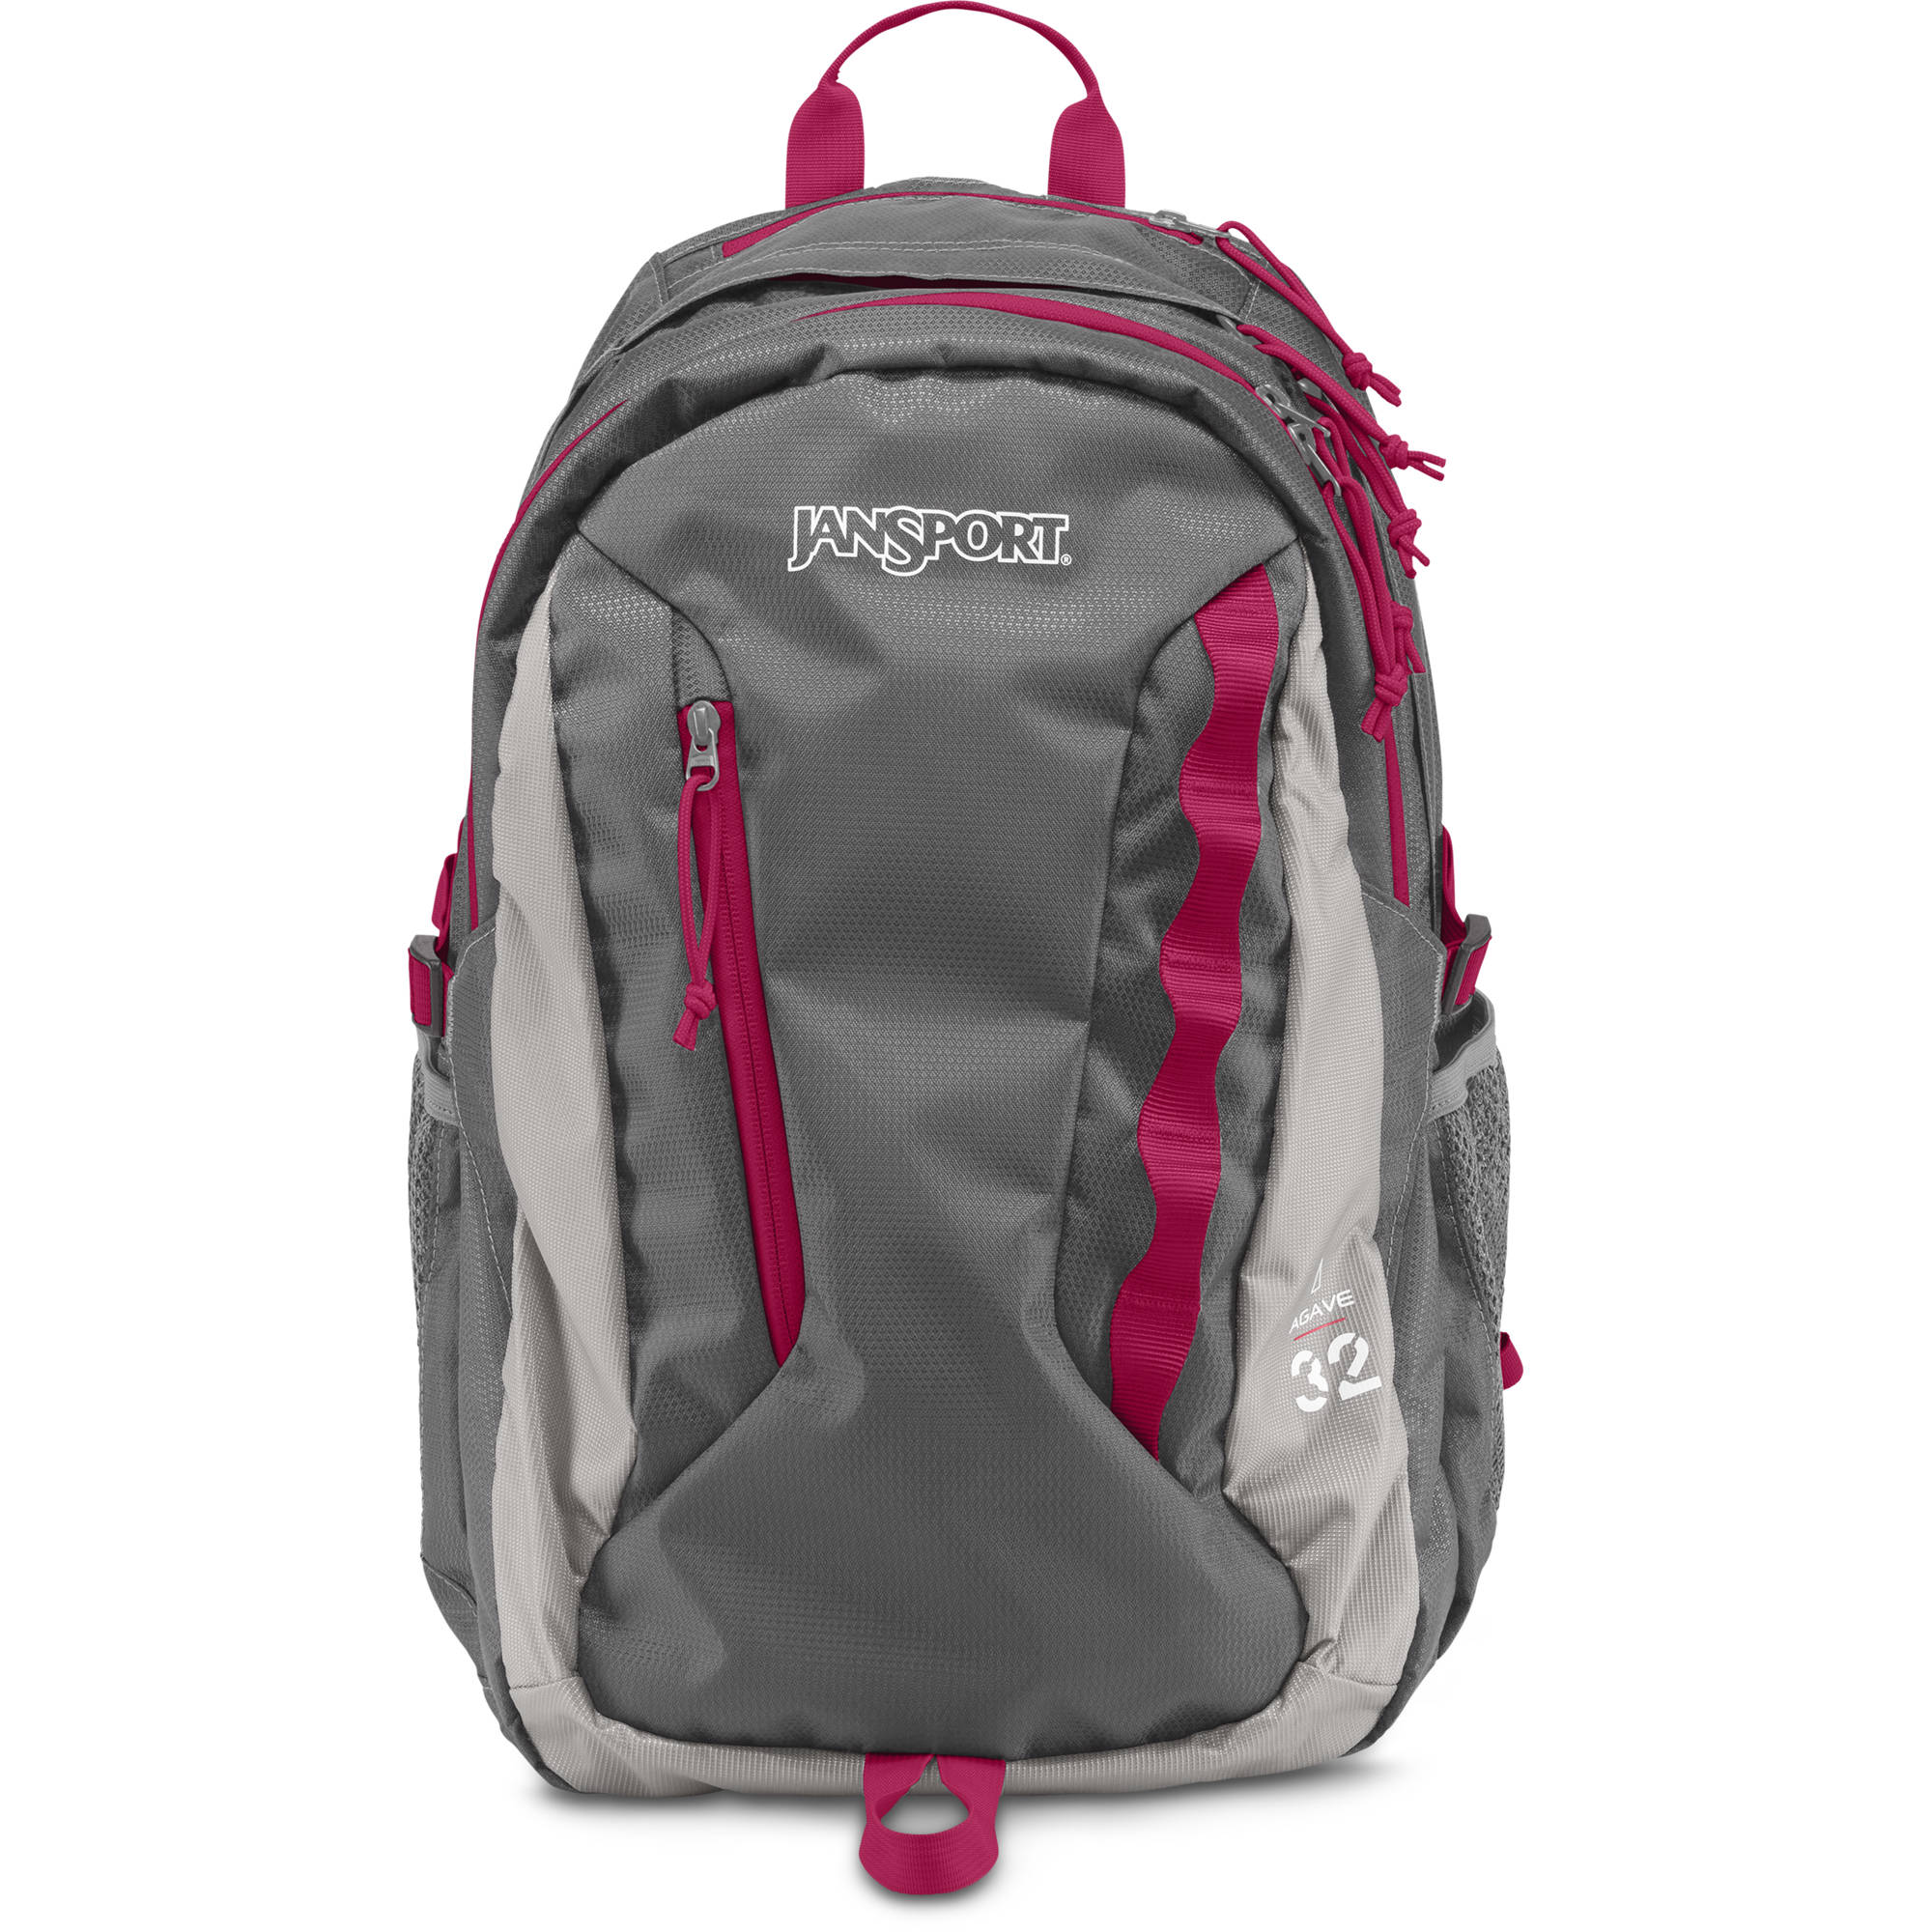 Cool If Your Jansport Backpack Goes Everywhere With You, You May Be Wondering How To Clean A Jansport Backpack Jansport Backpacks Are Made To Be Rugged, Tough And Take A Lot Of Abuse While Enduring All Of That Abuse, They Are